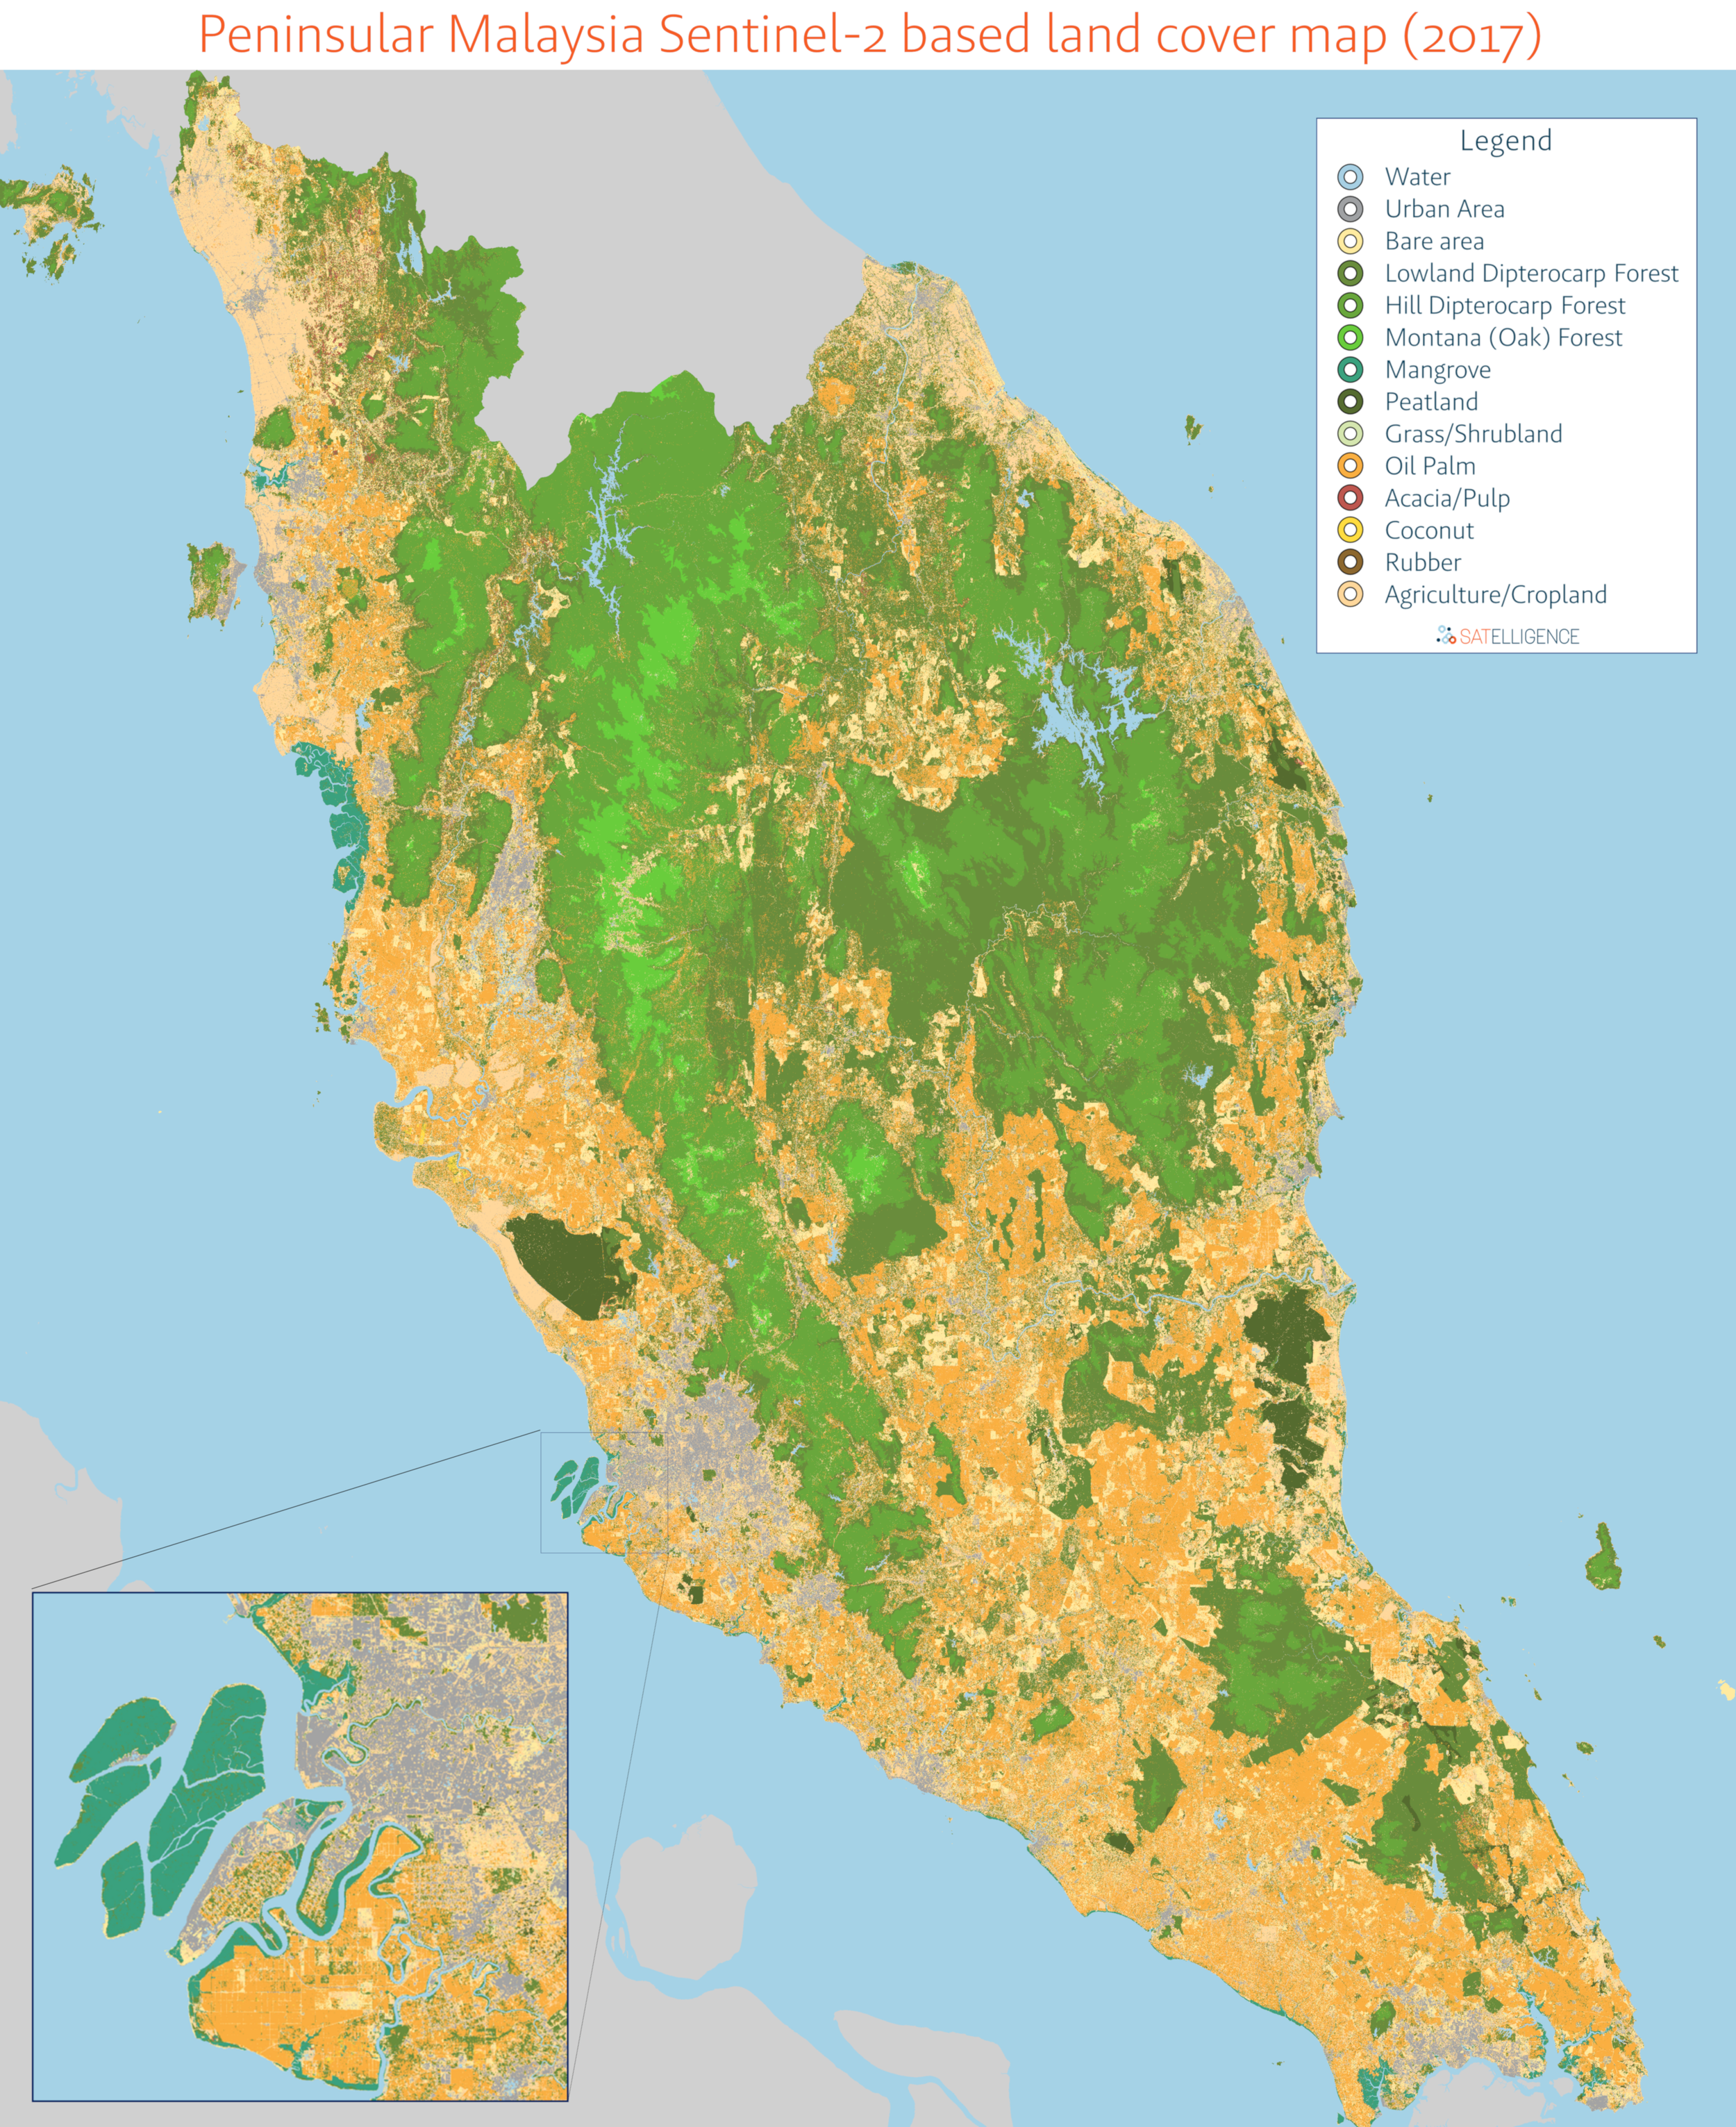 Setting a baseline for deforestation with land cover mapping ... on ecological succession map, climate change, hydroelectric dams map, land pollution, transboundary pollution map, environmental issue, world map, ozone depletion, exploitation of natural resources, global warming map, land degradation, groundwater depletion map, pesticide use map, greenhouse gas, species extinction map, glacier melt map, global warming, ecological footprint map, environmental degradation, water depletion map, tree plantation map, intensive farming map, danish language map, illegal logging, mass extinction map, forest reserves map, land use map, indoor air pollution map, environmental problems map, genetically modified crops map,